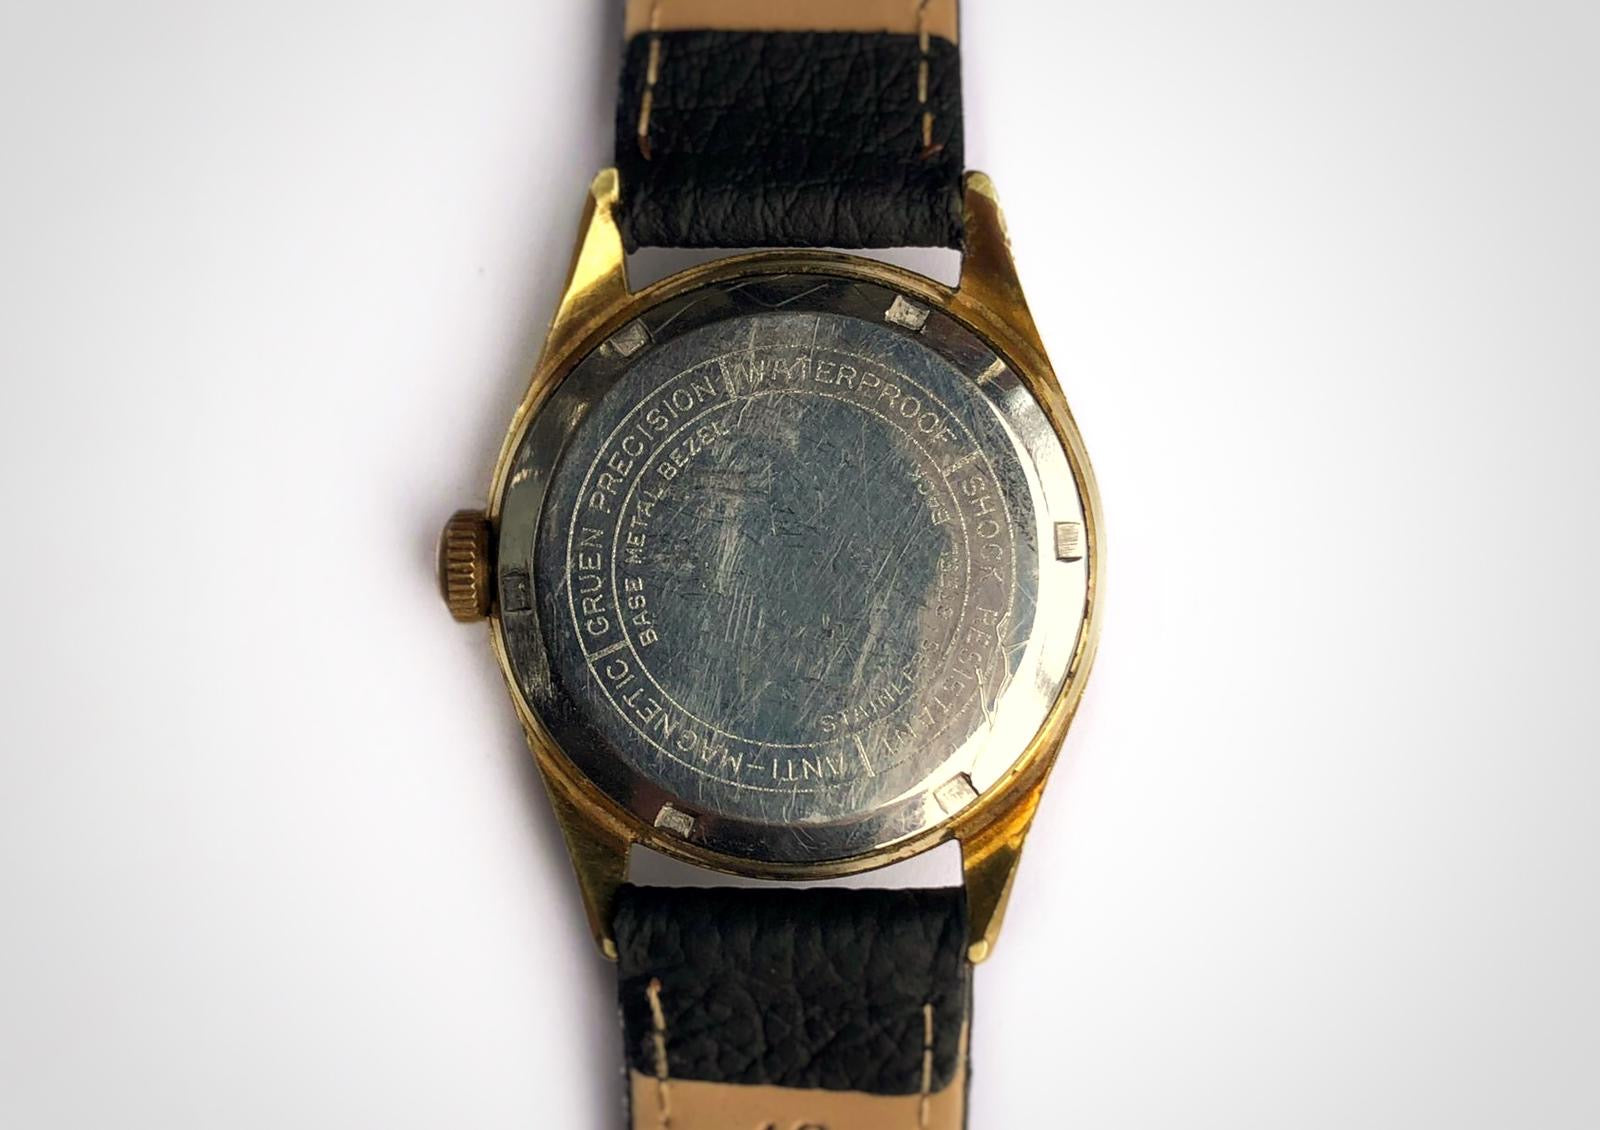 Back of Vintage watch with linen dial and 3-6-9 pattern and gold case made by Gruen. First watch worn by James Bond as Sean Connery with engraving on caseback